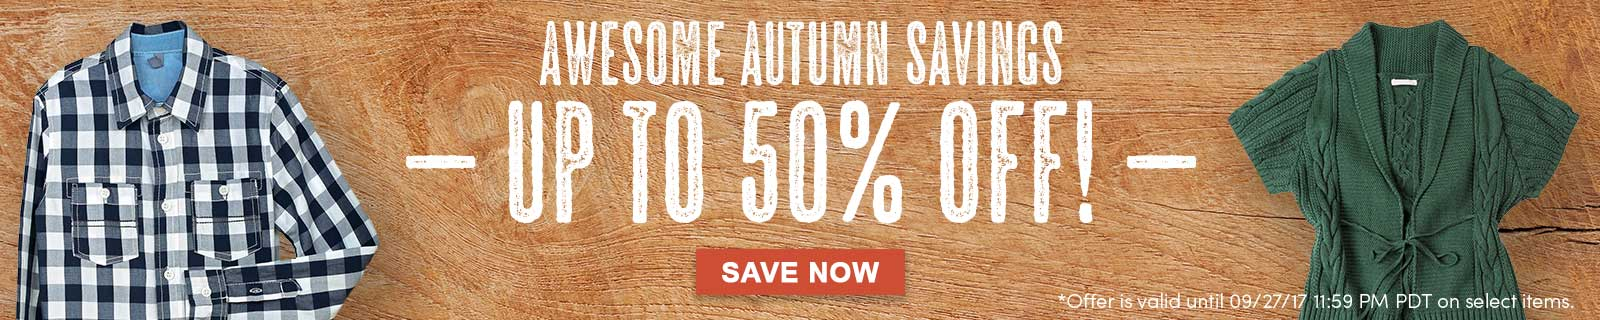 Awesome Autumn Savings Up To 50% Off! Save Now